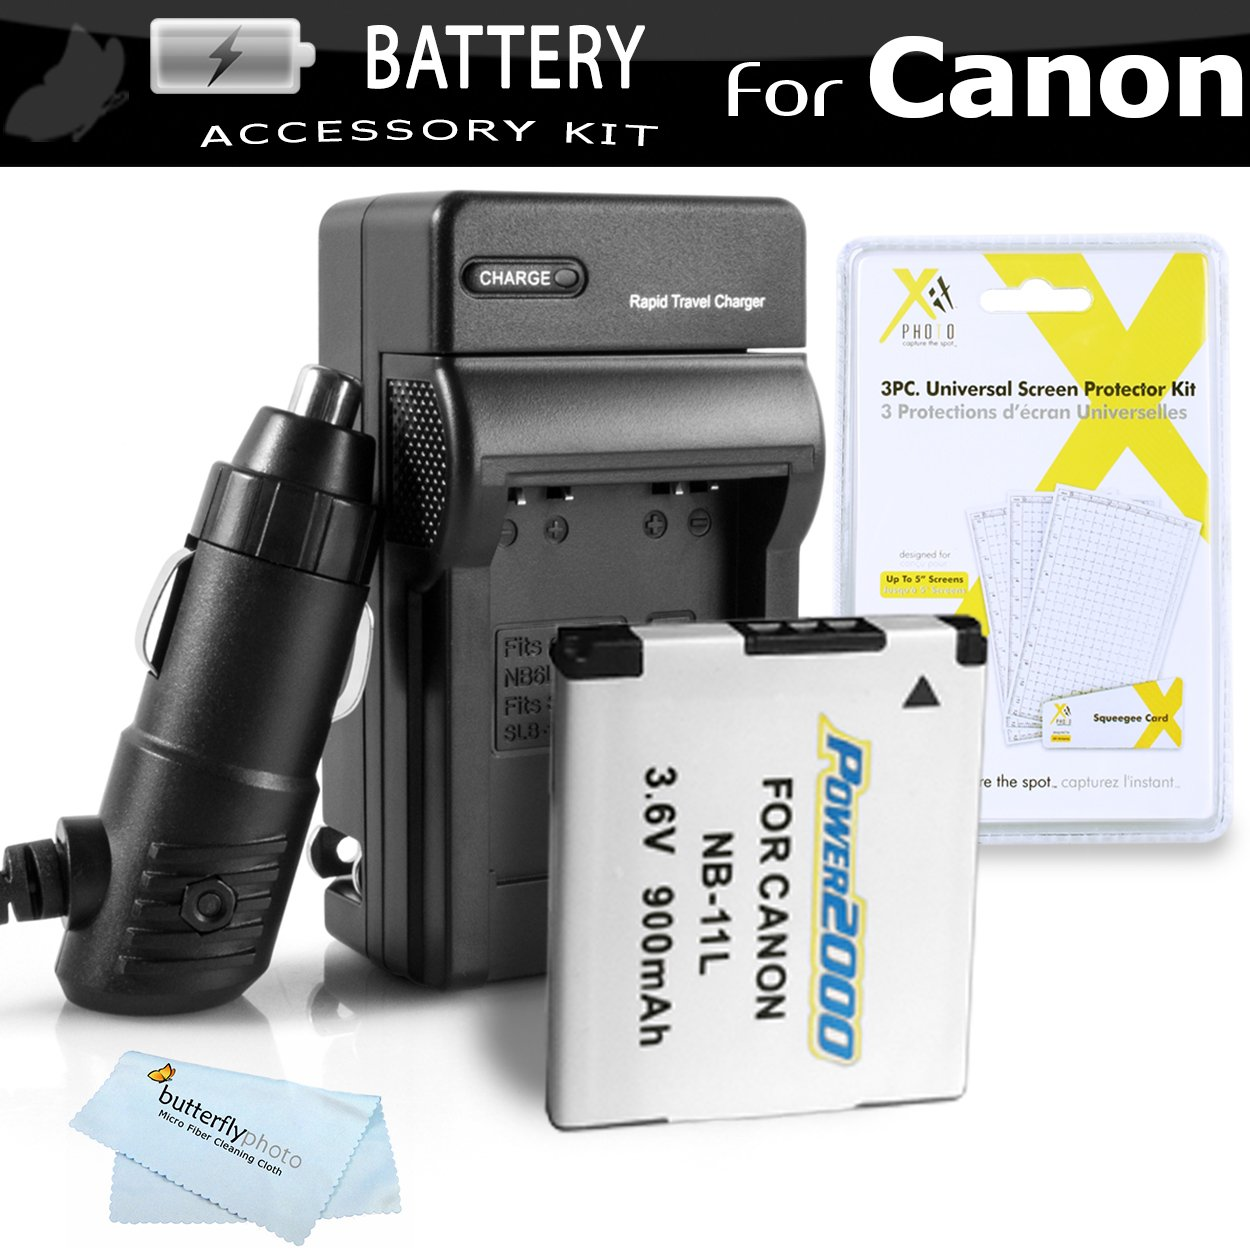 Replacement NB-11L Battery And Charger Kit For Canon Powershot ELPH 180, ELPH 190 IS, ELPH 150 IS, 340 HS, SX400 IS, ELPH 170 IS, ELPH 160, SX410 IS, SX420 IS, ELPH 350 HS, ELPH 360 HS Digital Camera